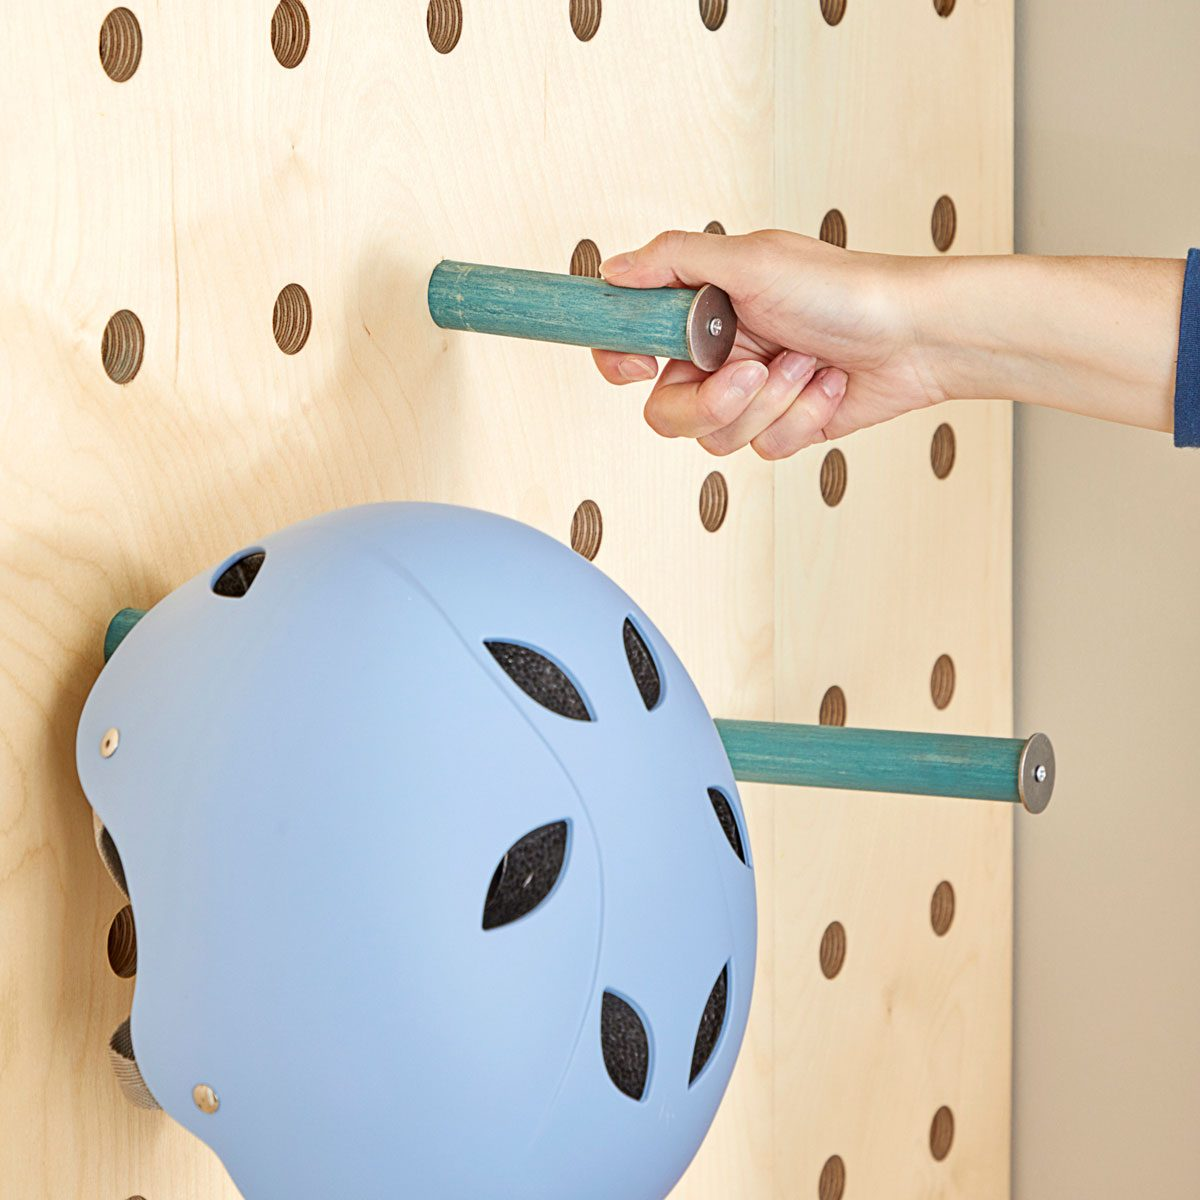 Inserting pegs into wall